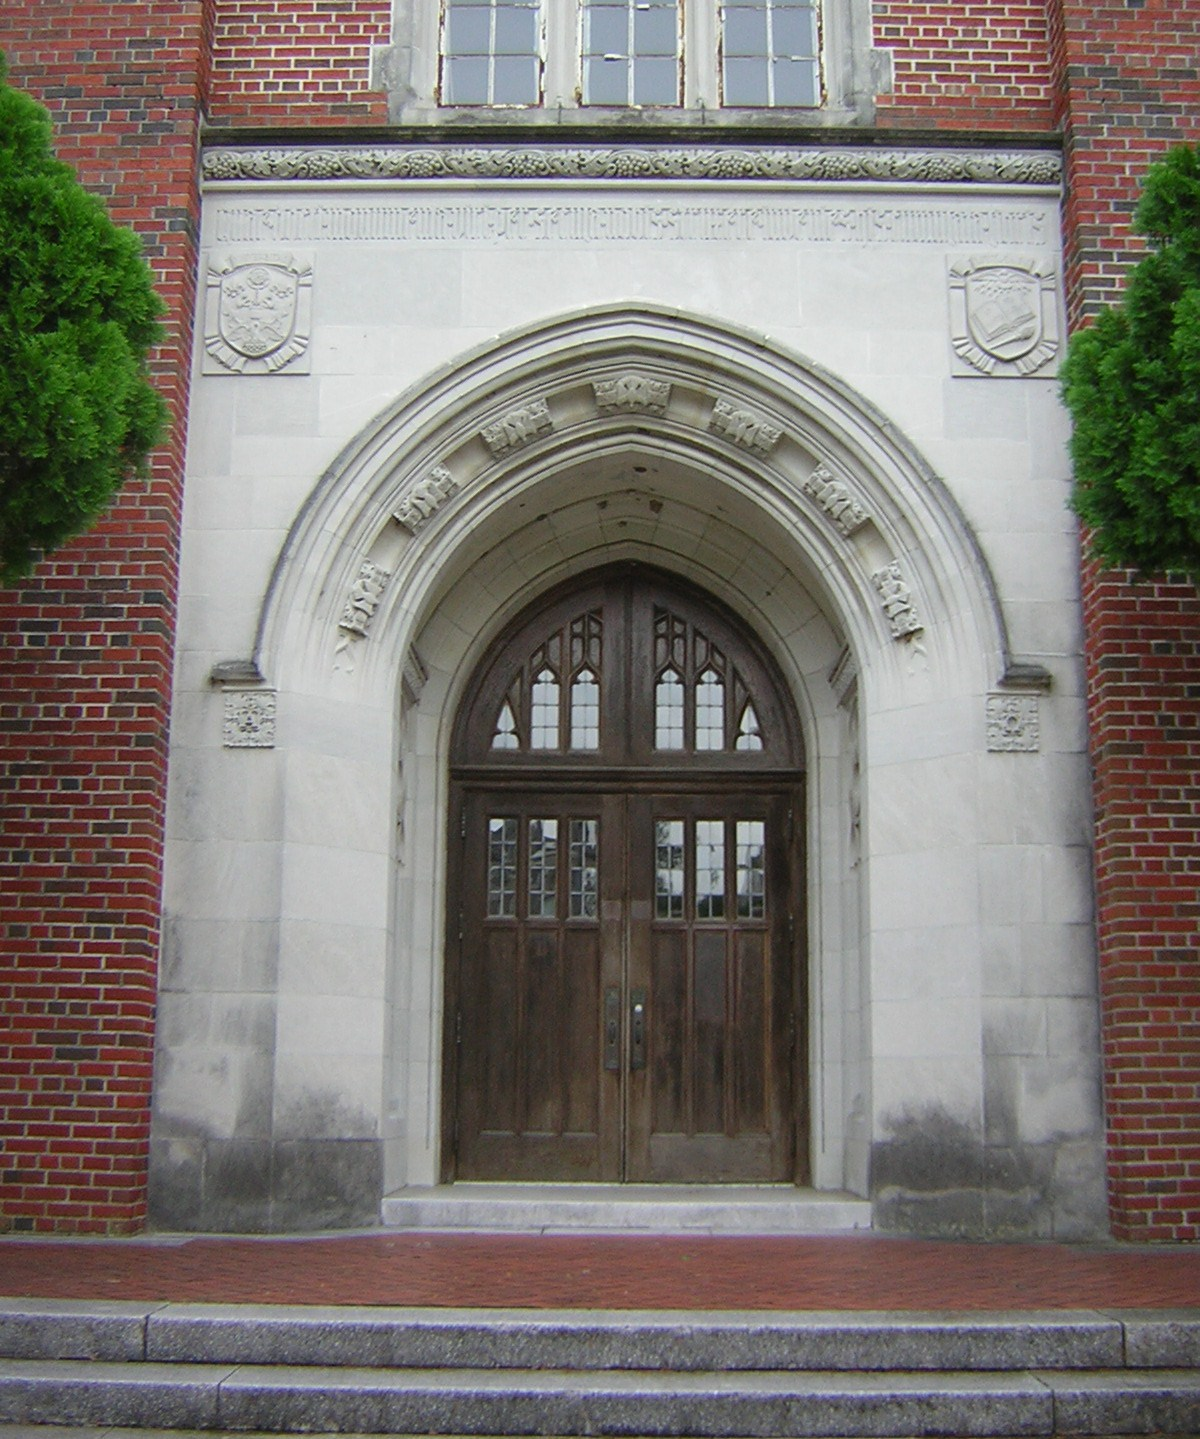 Entrance to the Memorial Library (1950), dedicated to Loyolans killed in World War II